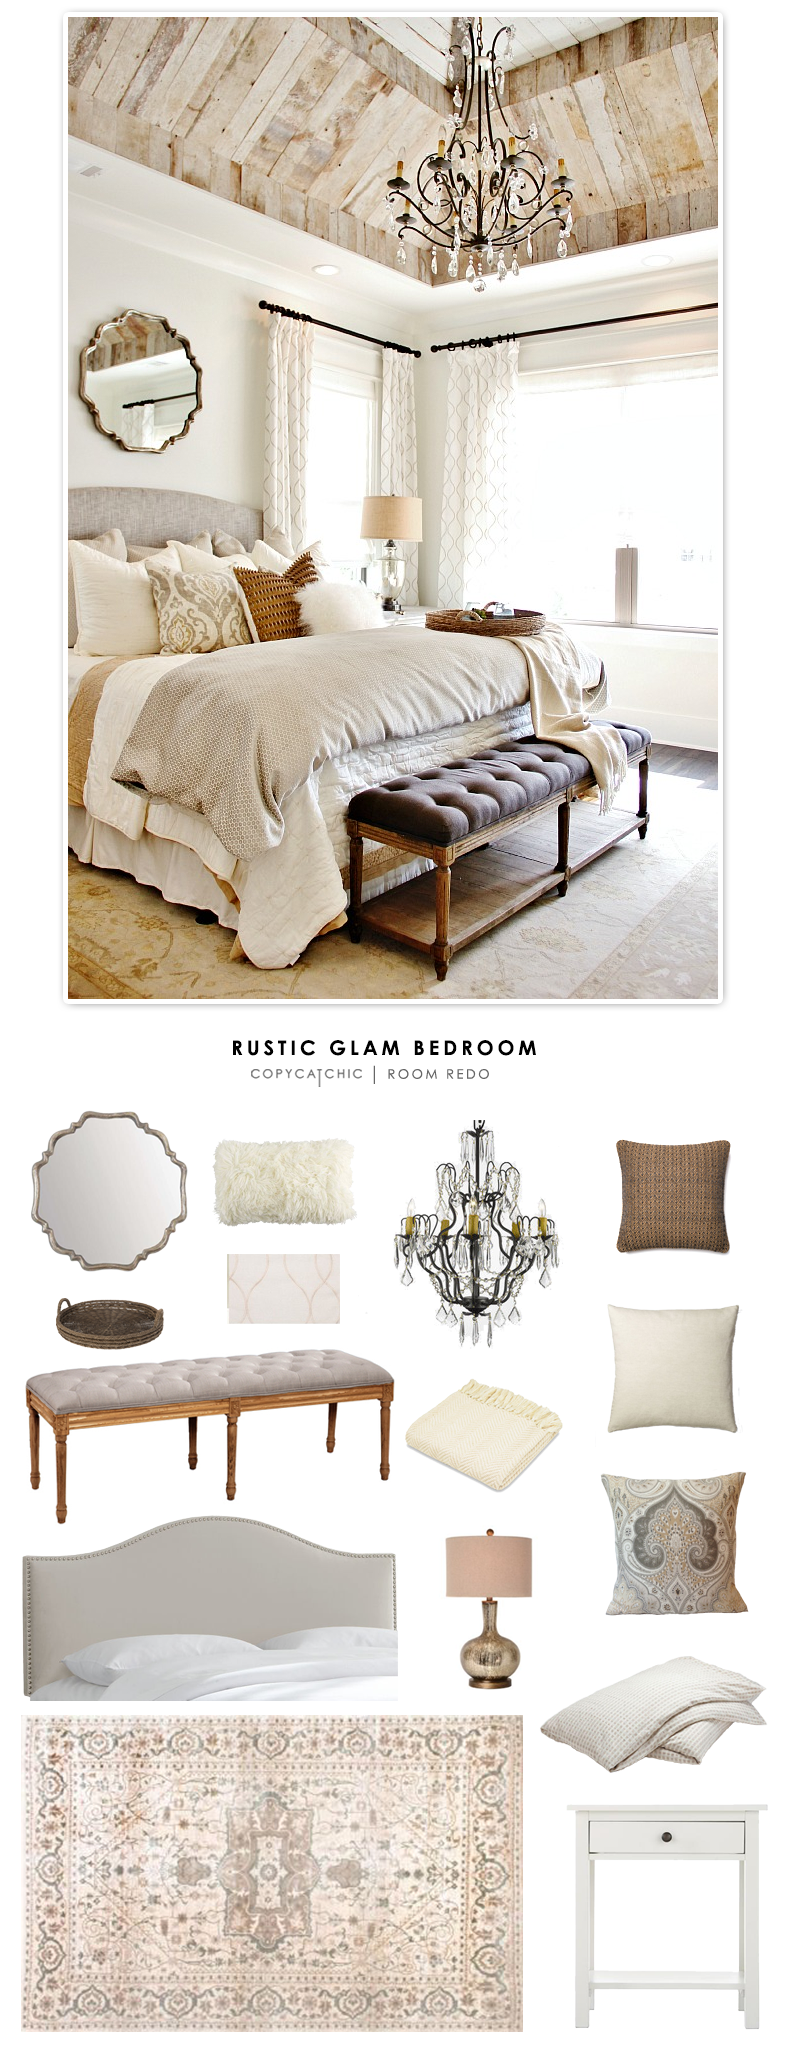 A rustic glam bedroom designed by Refresh Home and featured by Thistlewood Farms recreated for less by Copy Cat Chic.